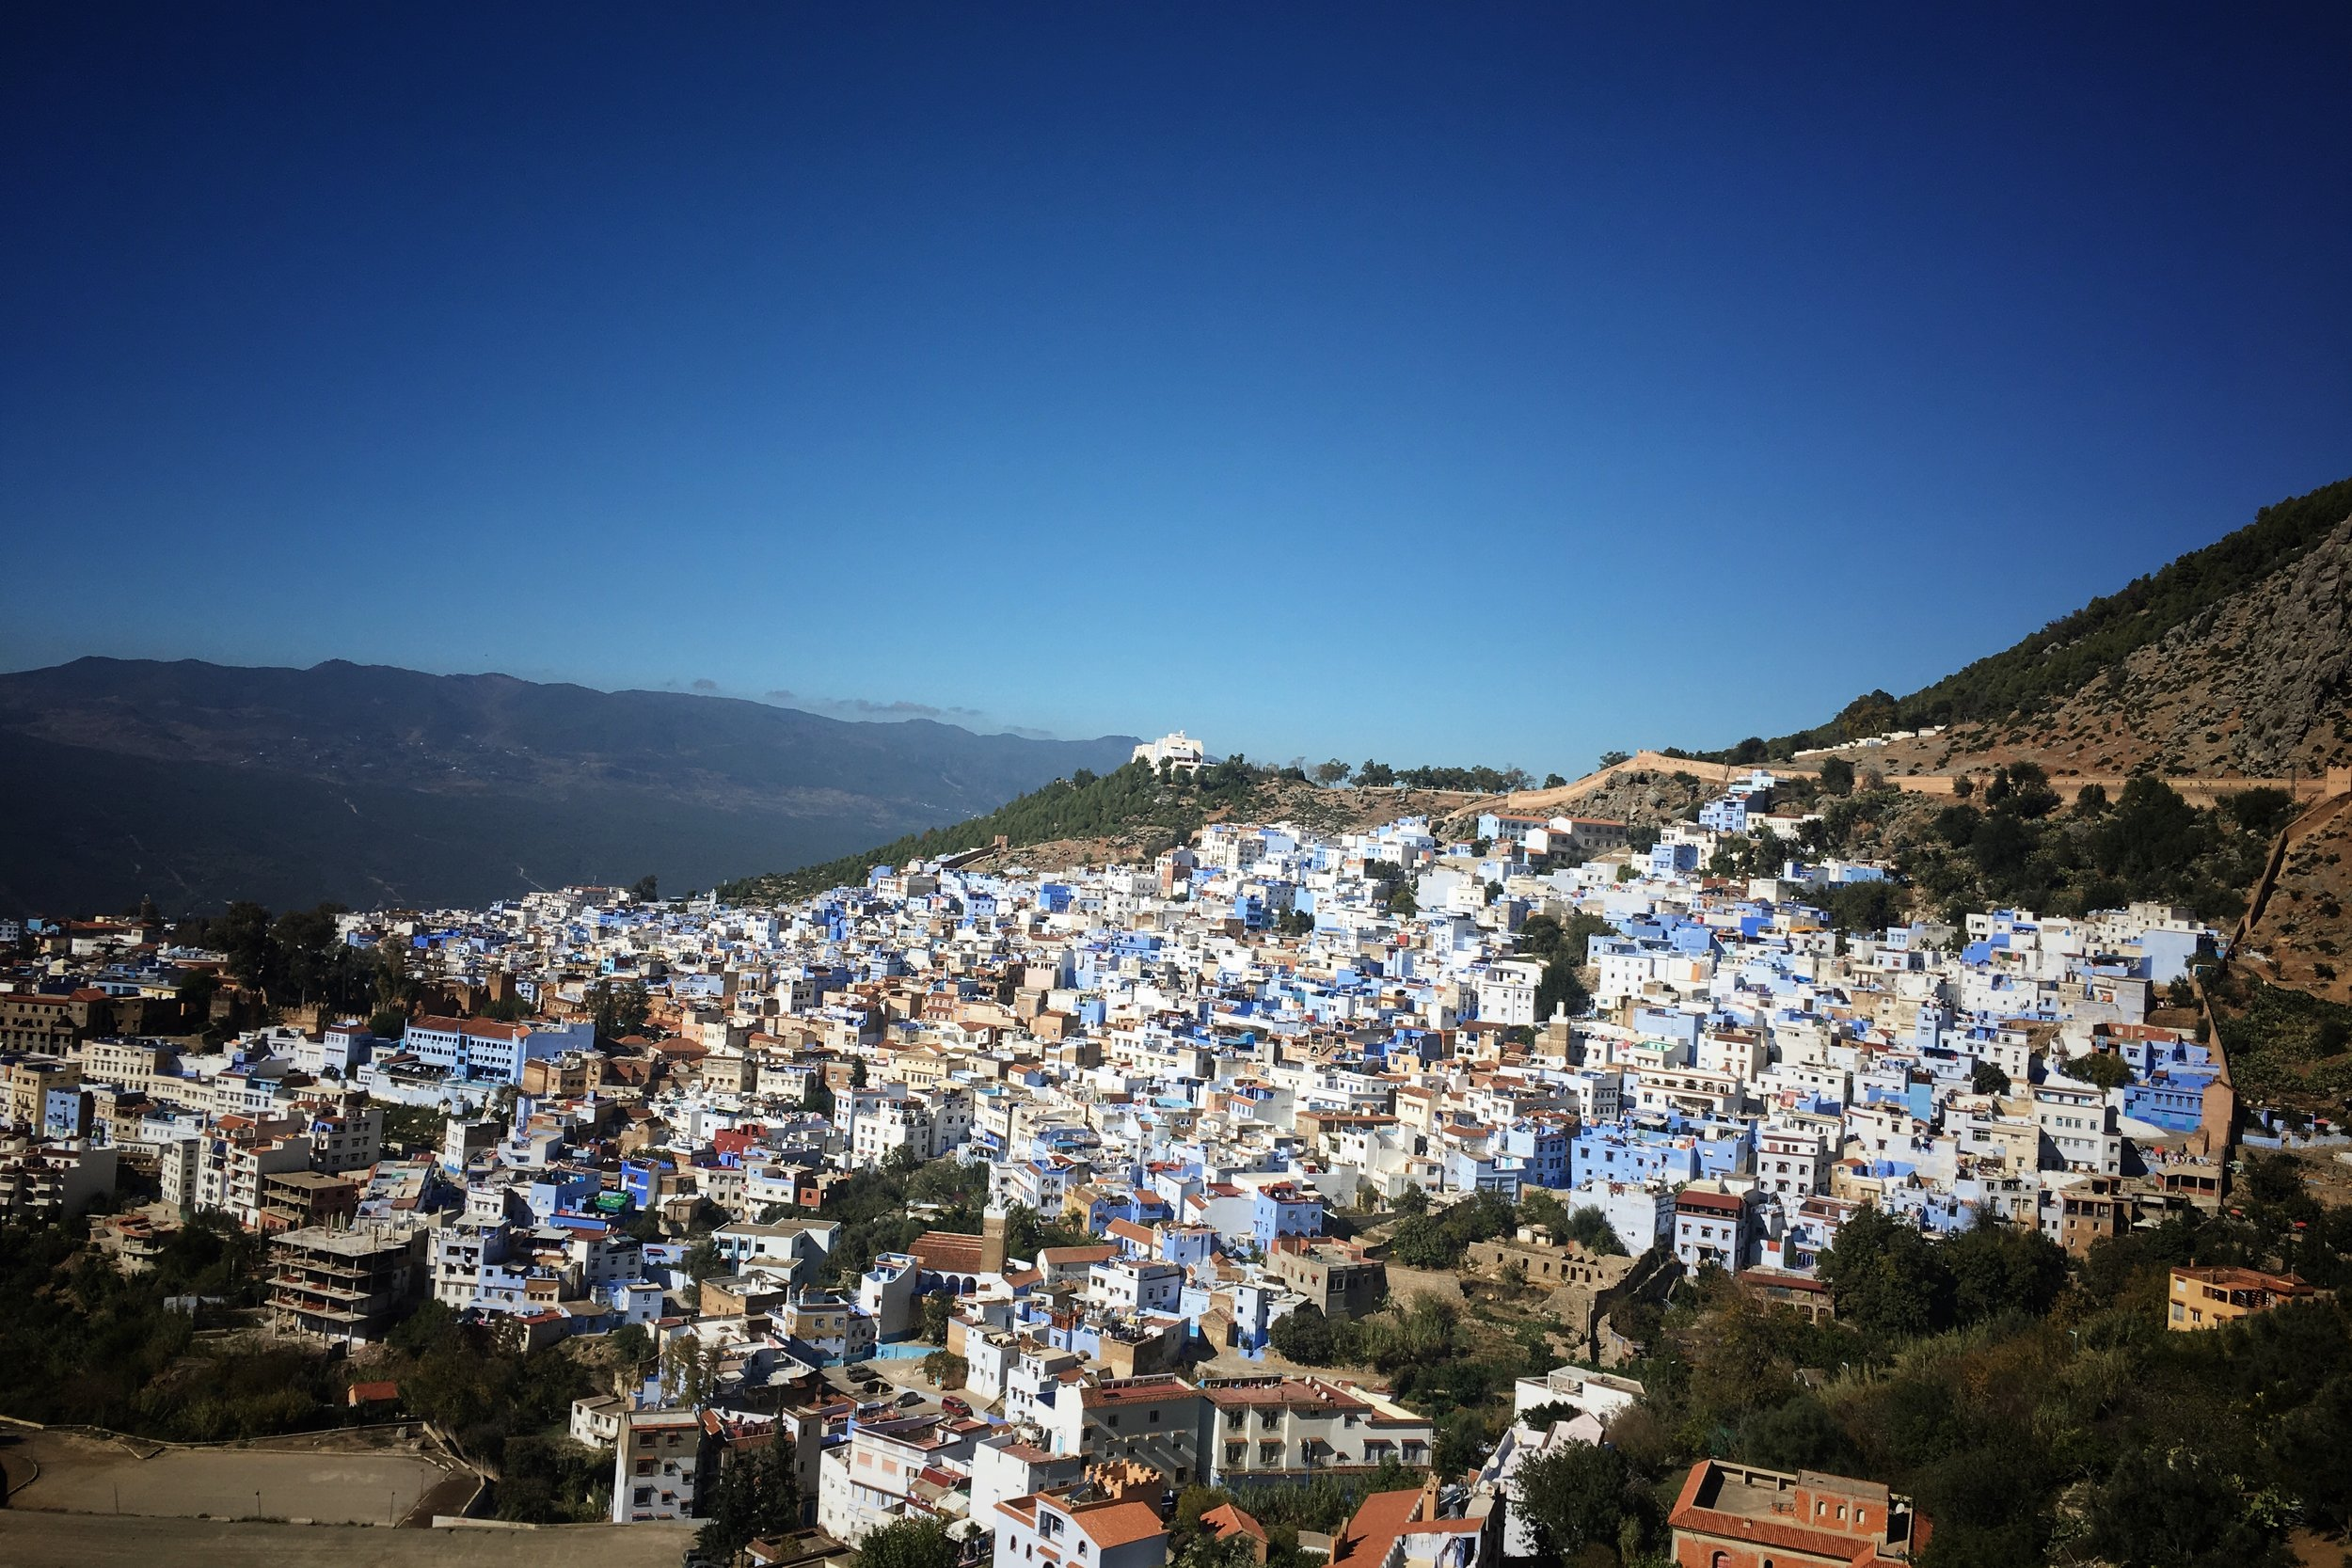 from the Spanish mosque,  looking back onto Chefchaouen